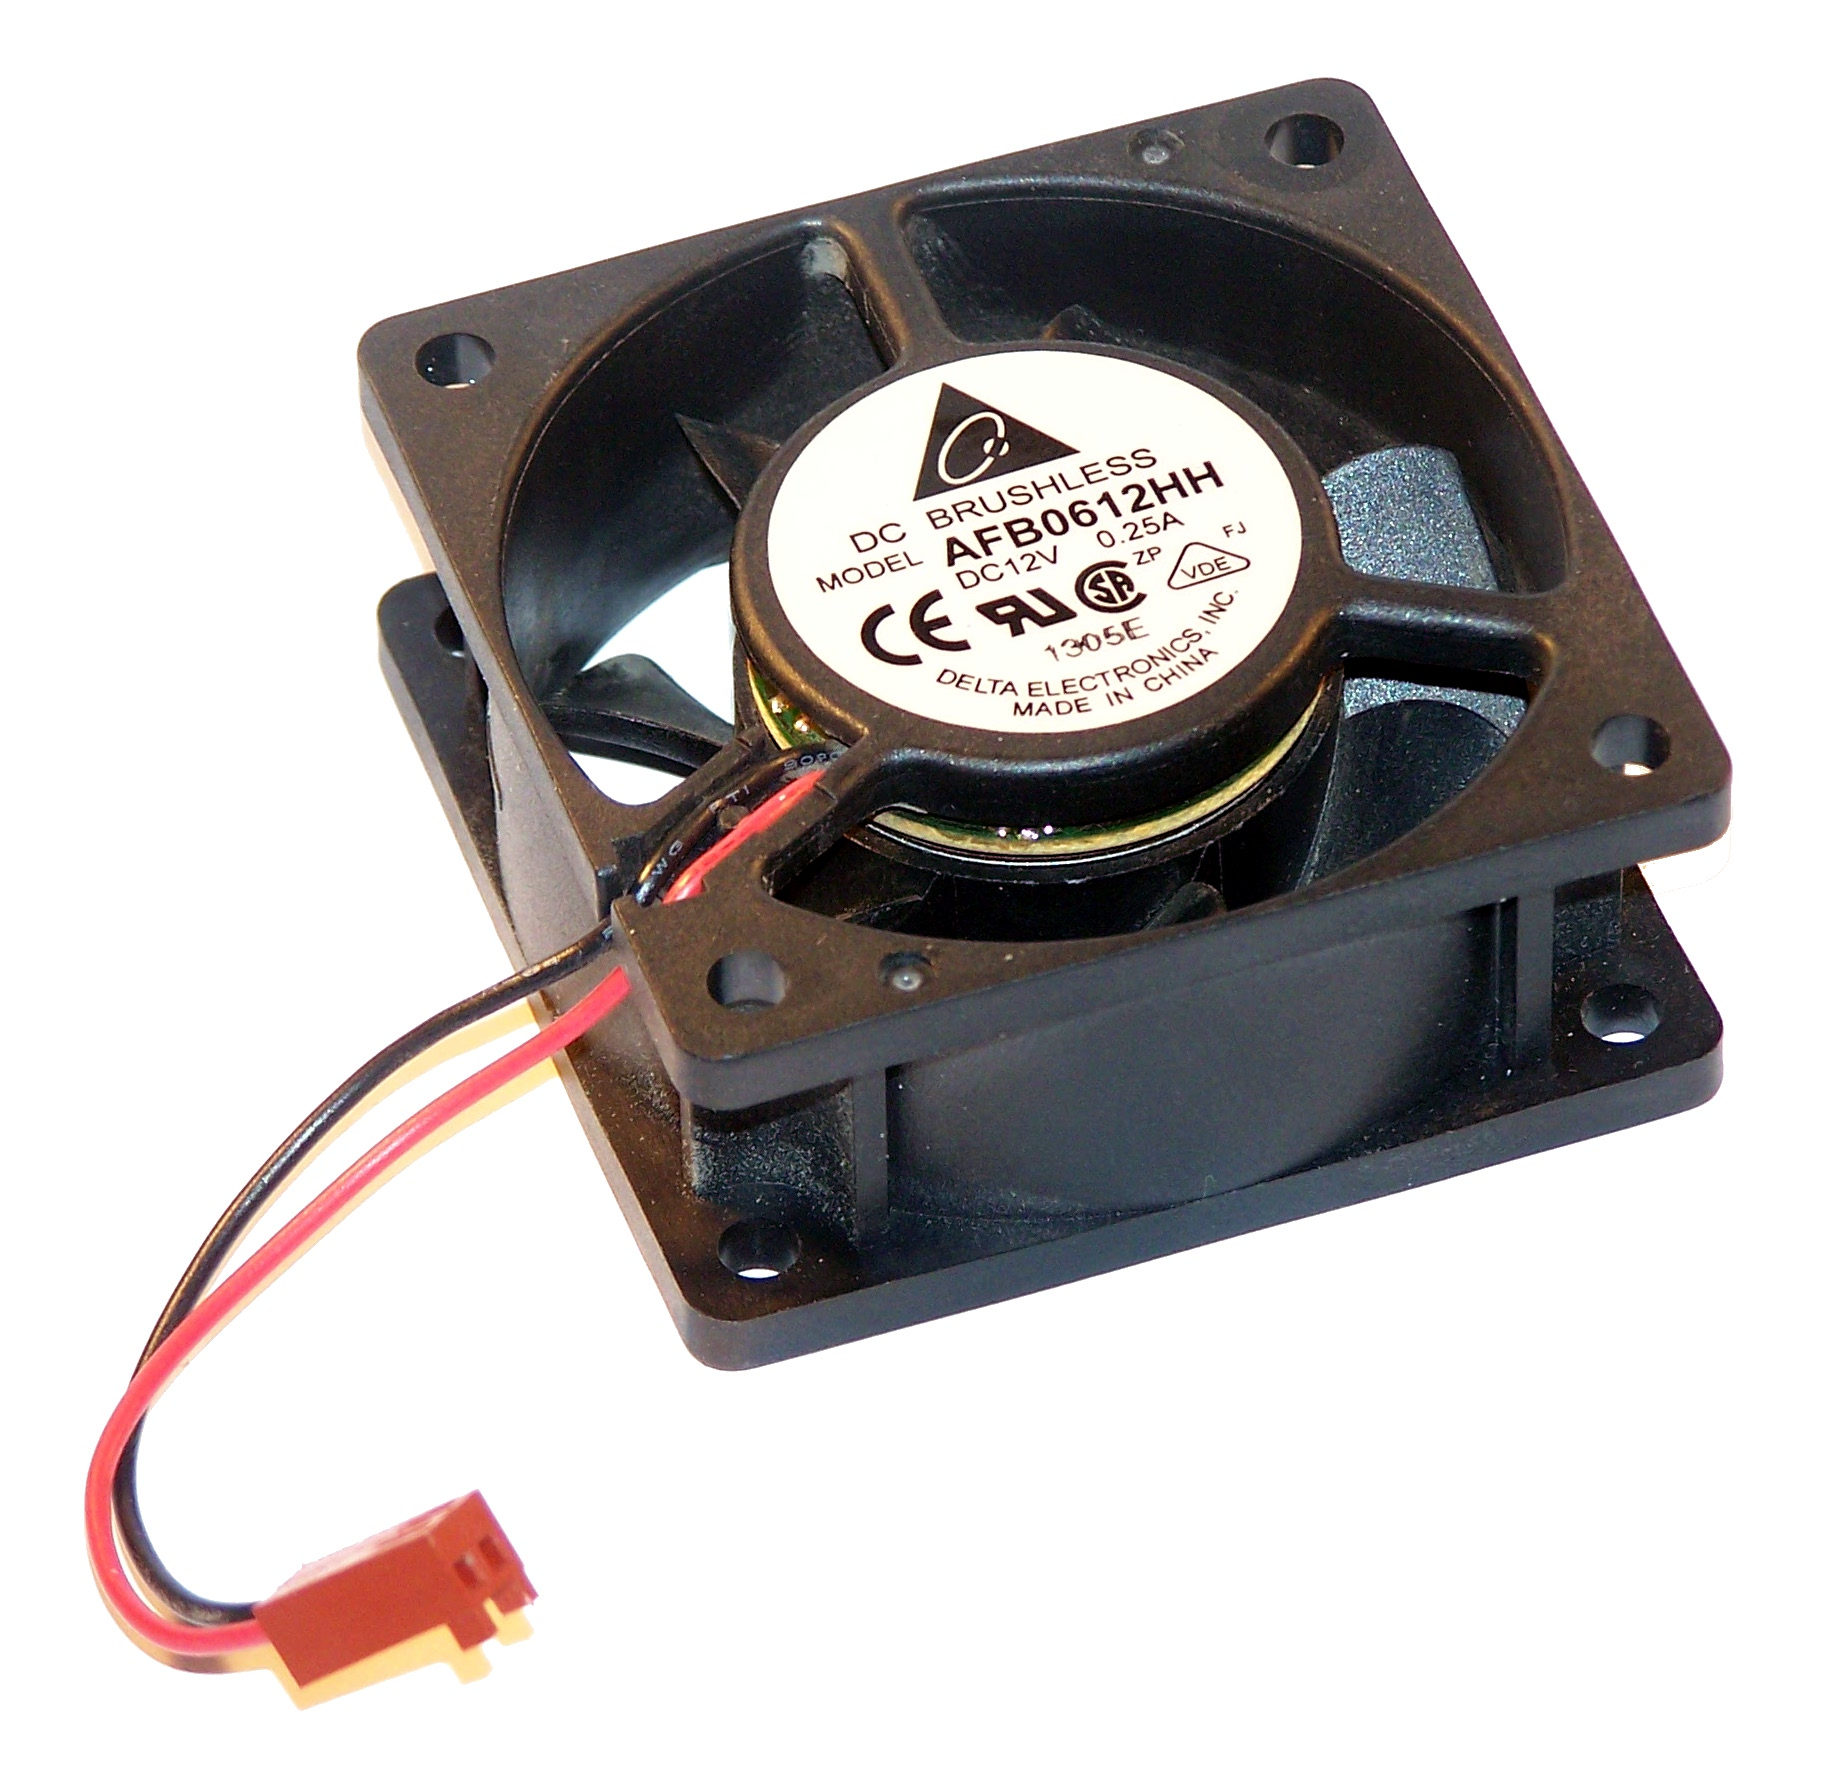 Delta Afb0612hh 12vdc 0 25a 60mm X 25mm 2 Wire Fan For 1u